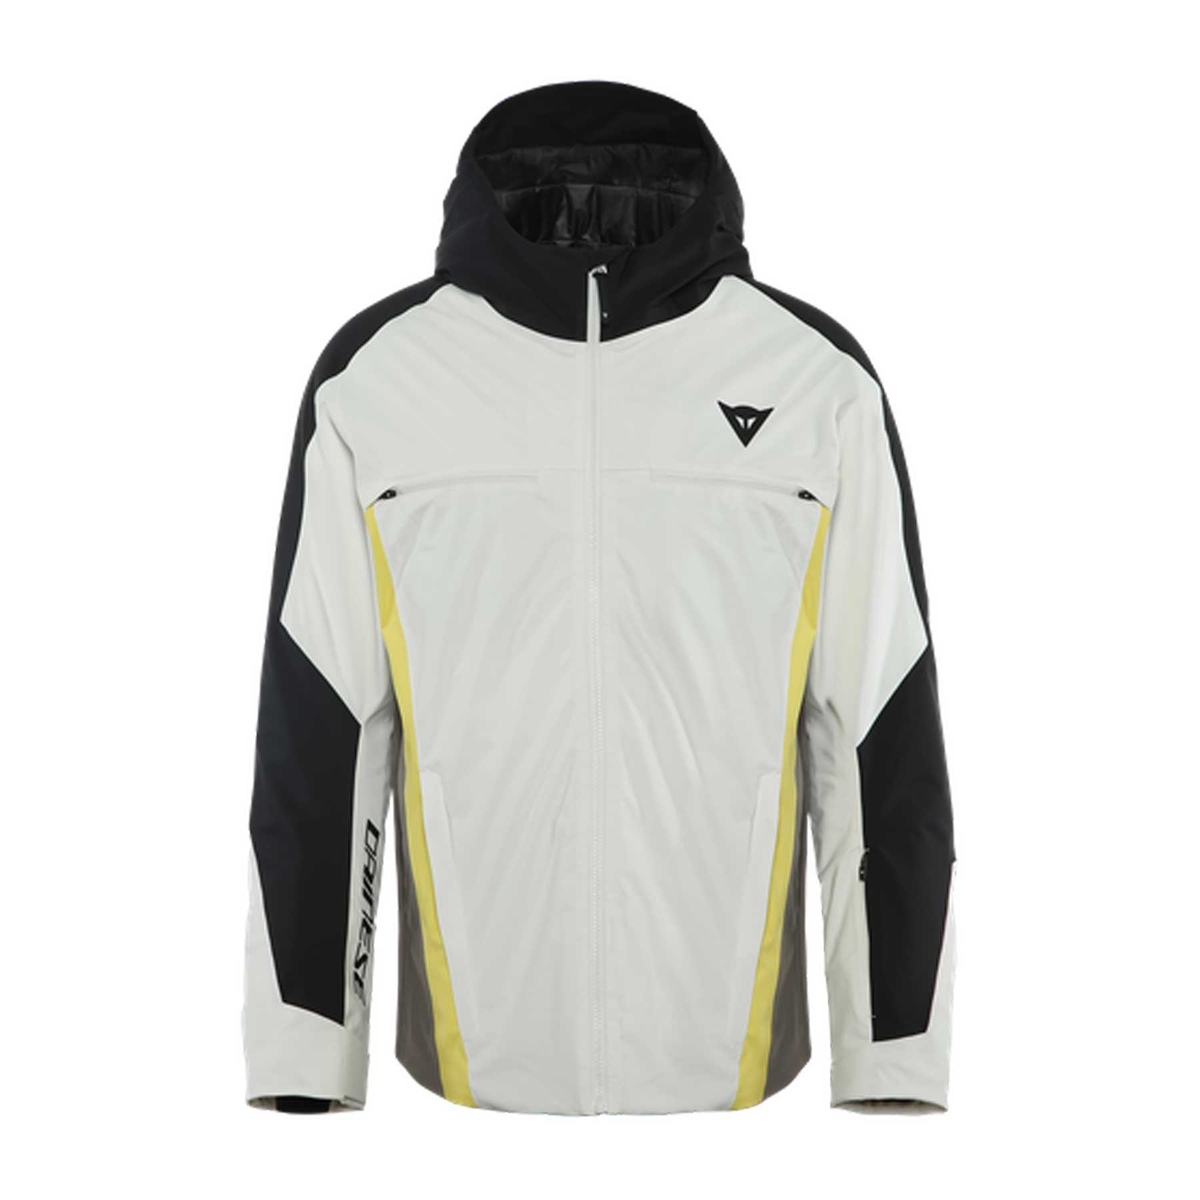 Prezzi Dainese giacca hp prism